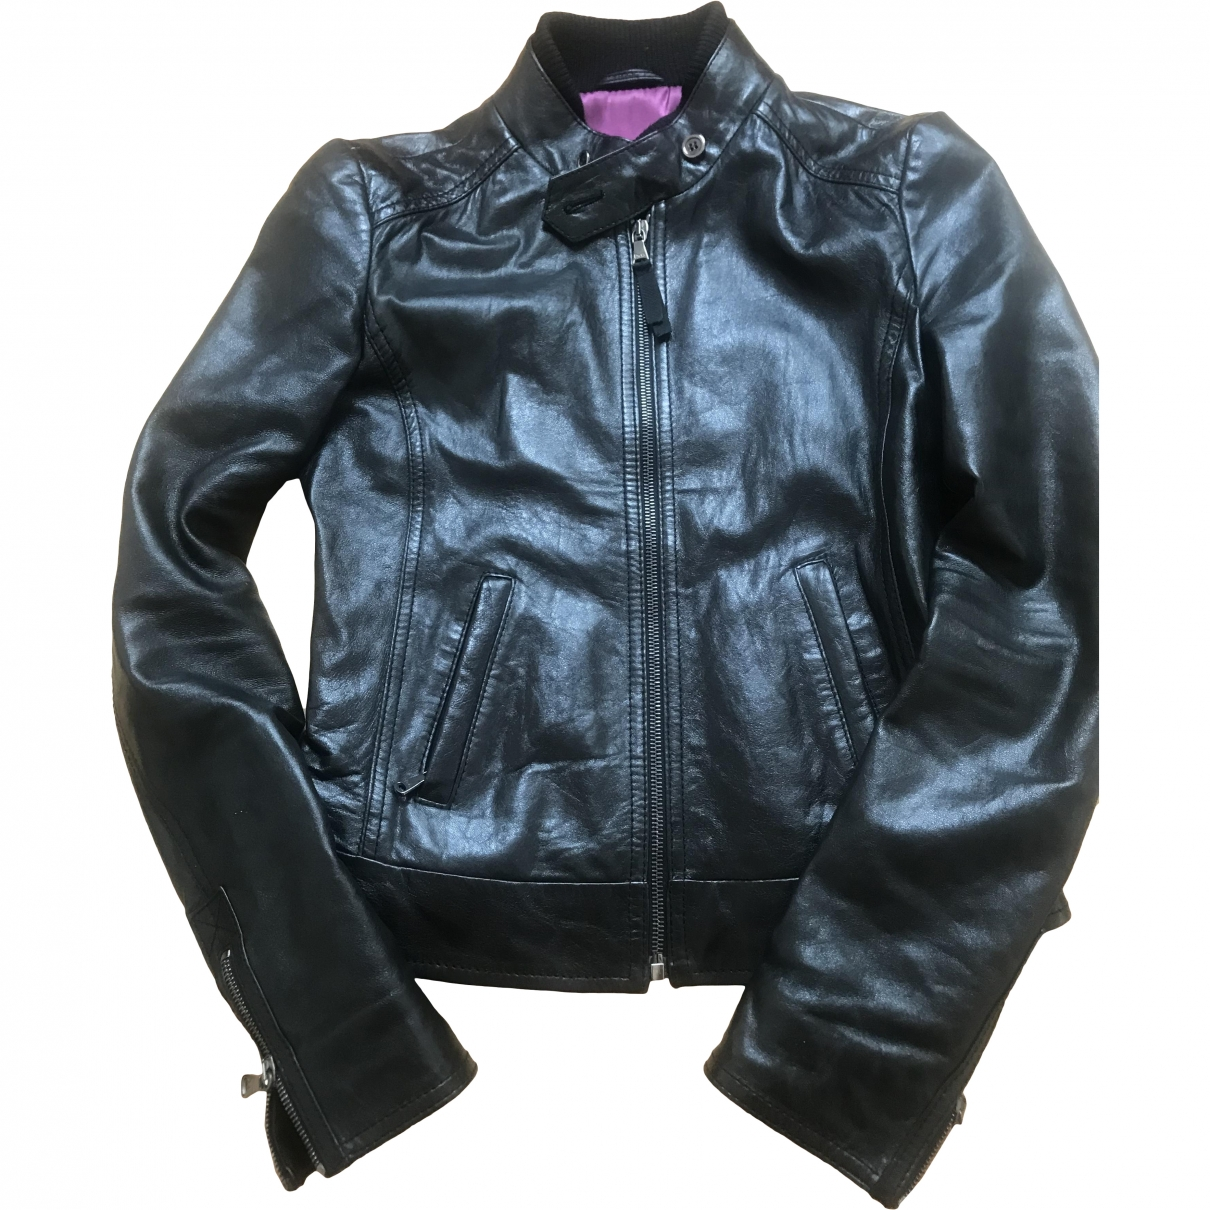 D&g \N Black Leather jacket for Women 40 IT